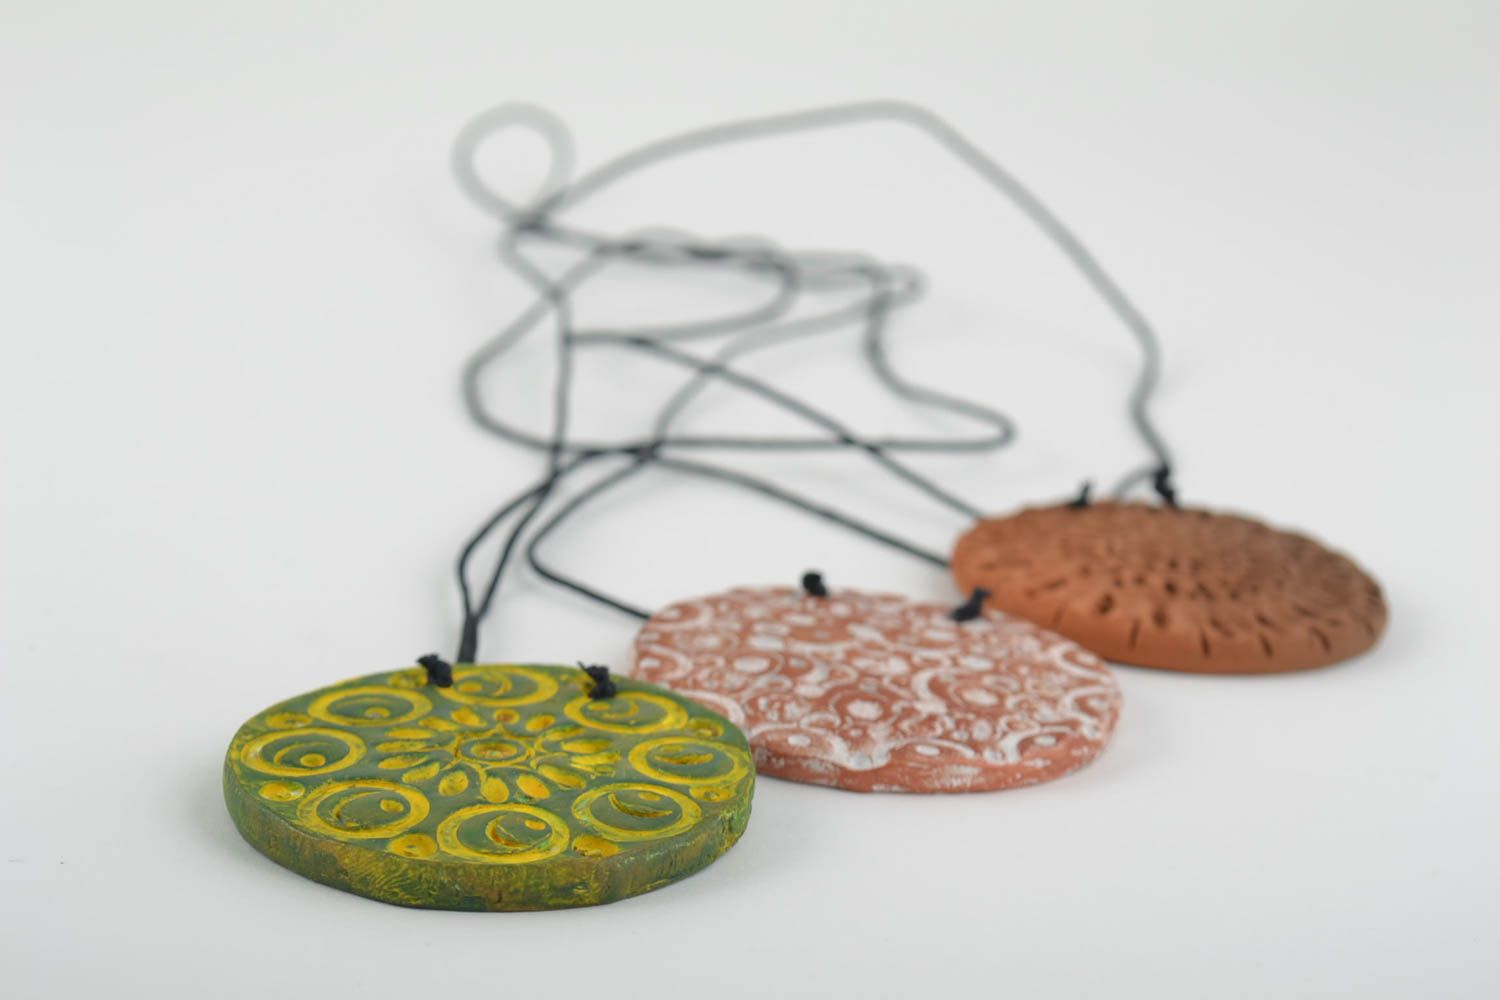 Unusual clay pendant handmade ceramic pendants 3 bright accessories gift photo 3